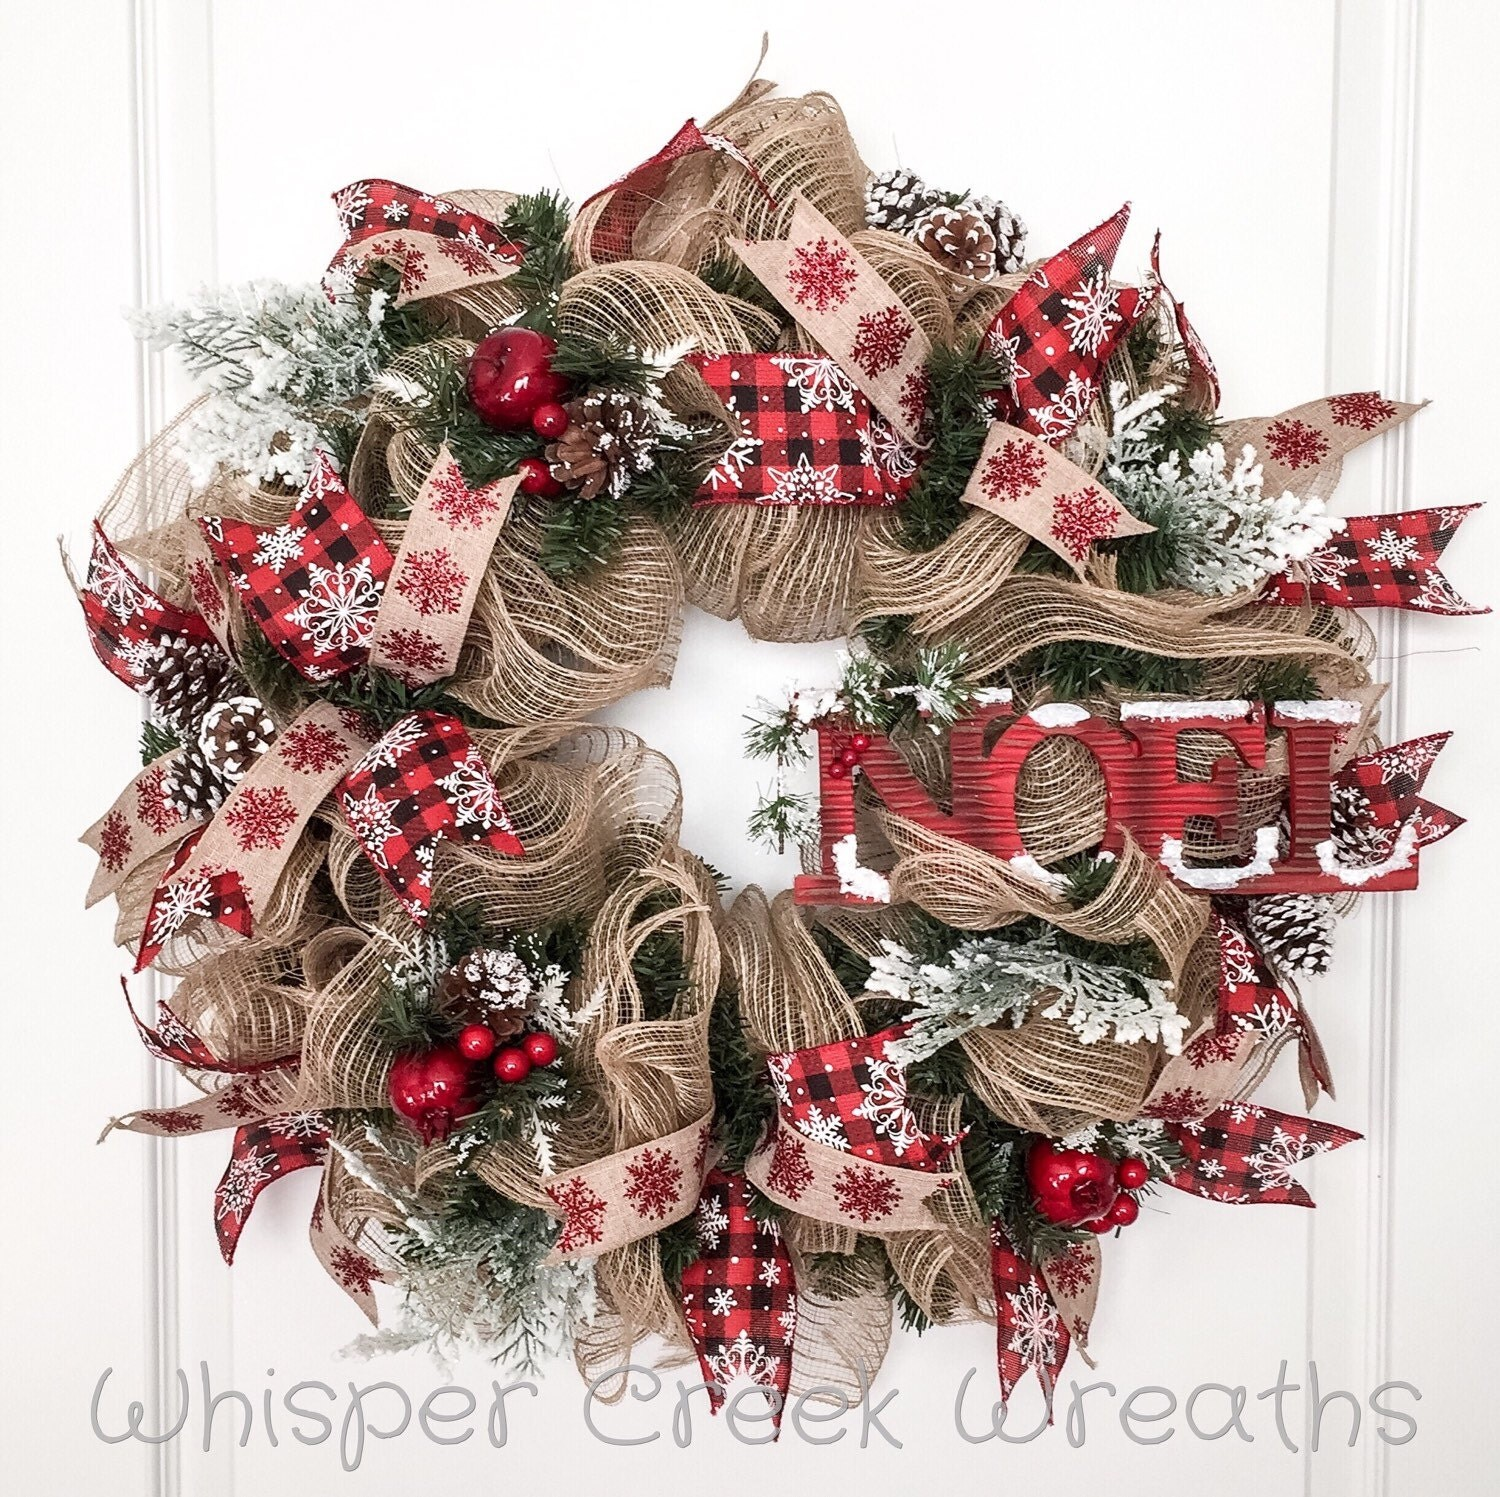 Noel burlap deco mesh wreath christmas wreath for front door for How to decorate a burlap wreath for christmas